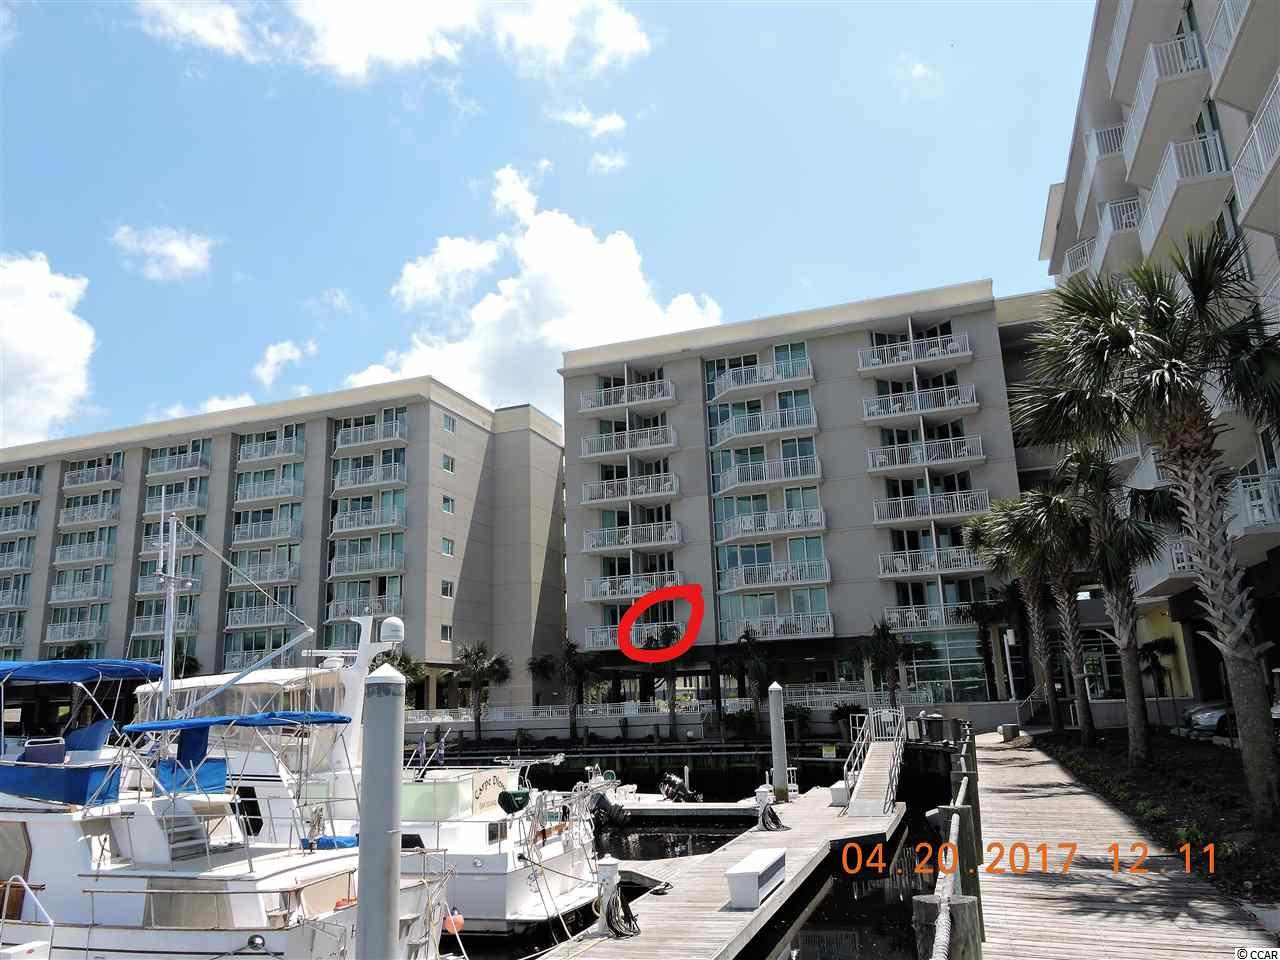 Harbourgate Resort & Marina condo for sale in North Myrtle Beach, SC